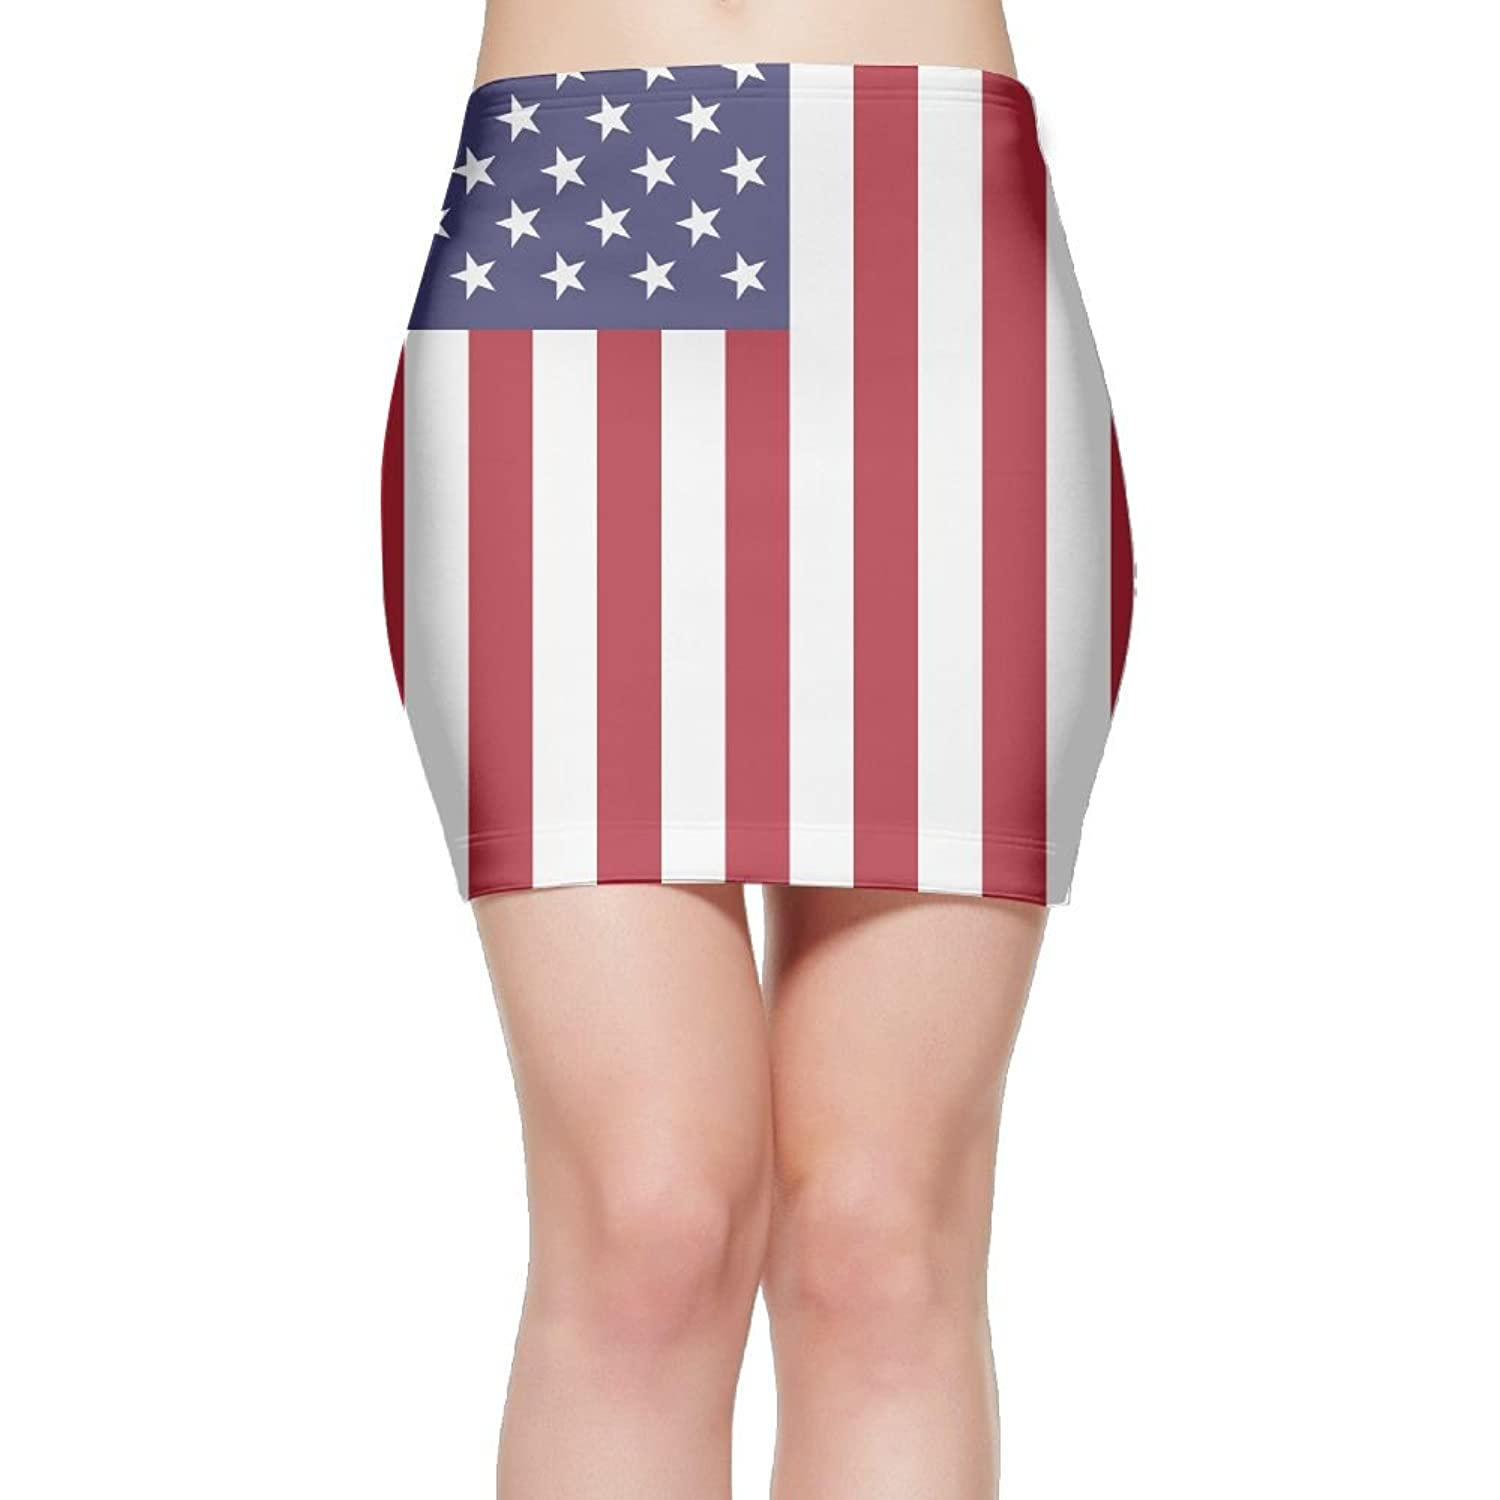 FASHIONGI USA Flag Fashion Elastic Waist Bodycon Casual Stretchy Pencil Mini Skirt Above Knee